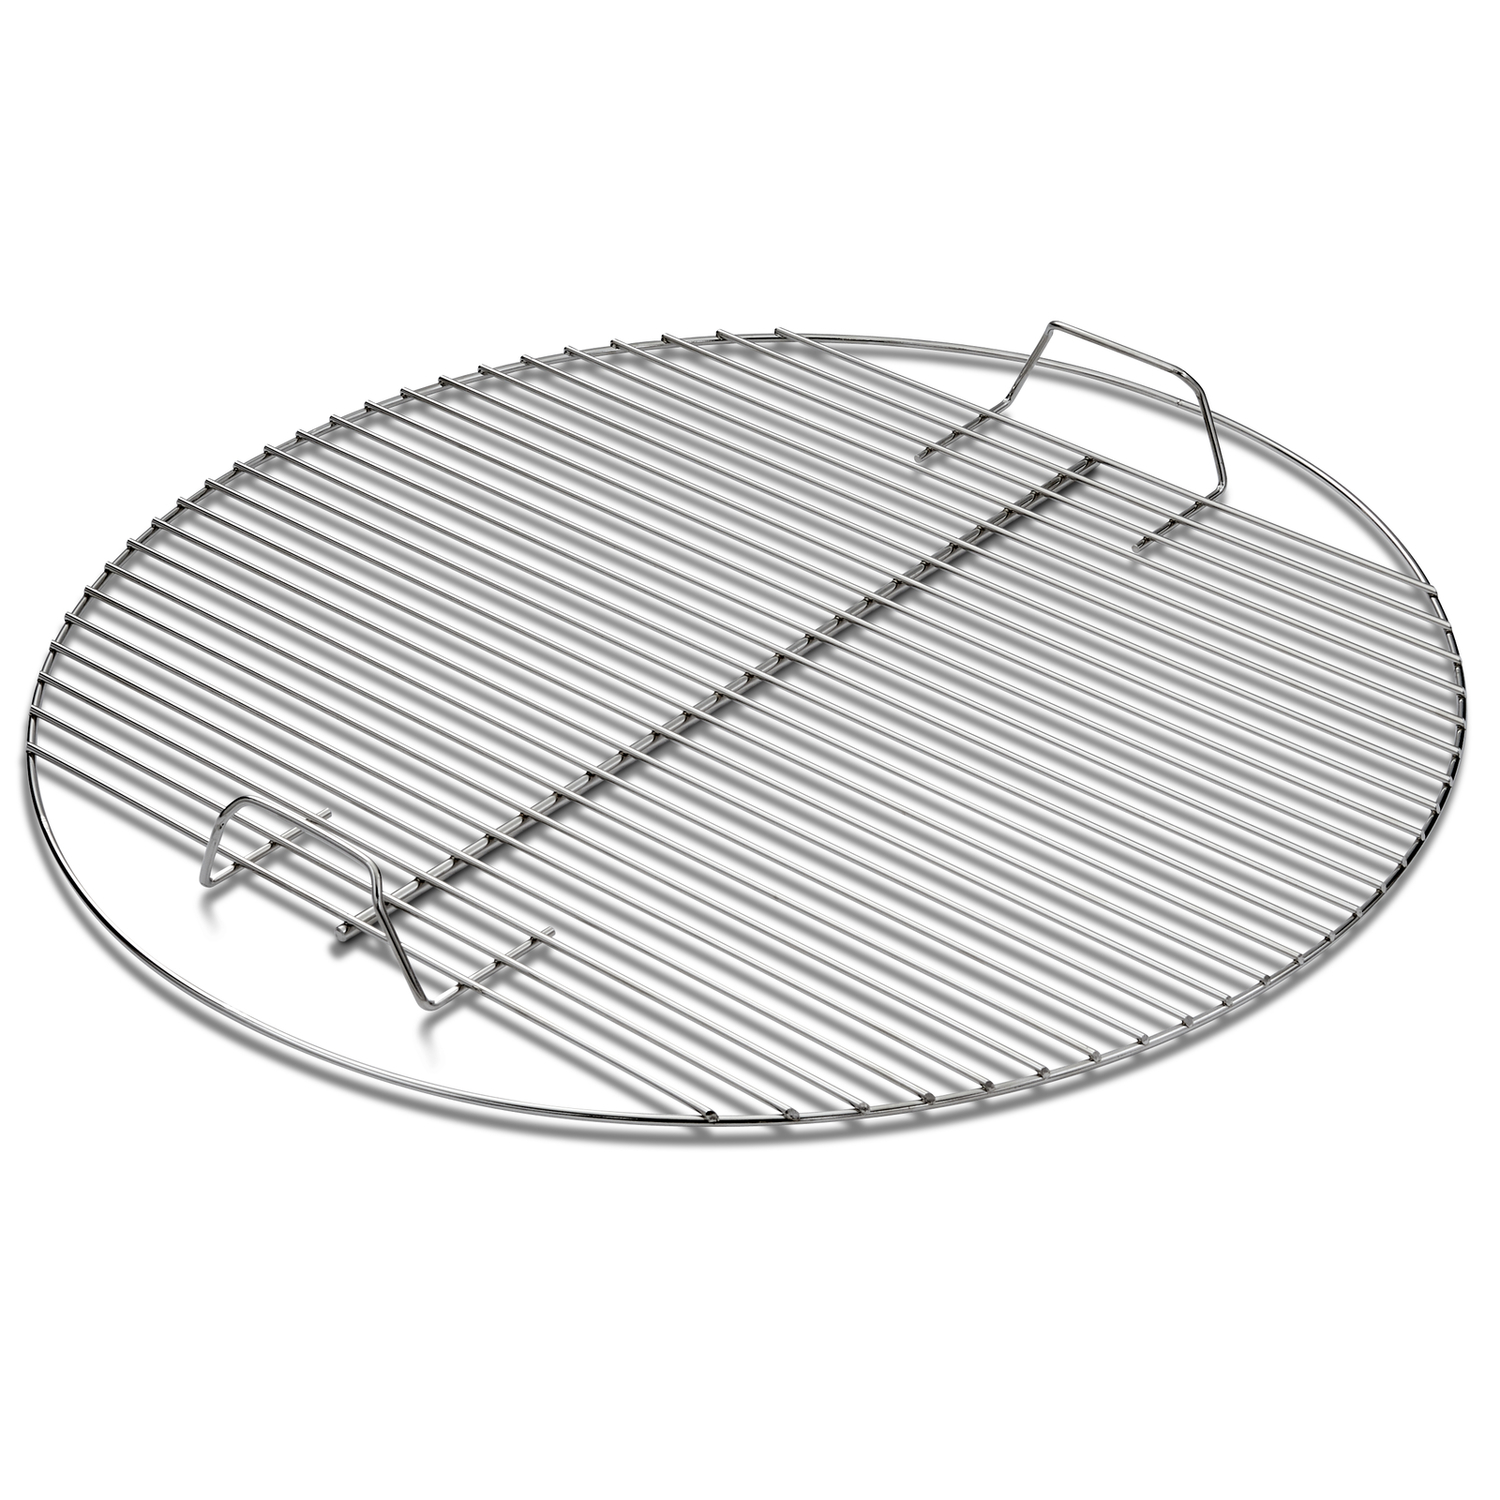 Weber  Plated Steel  Grill Cooking Grate  2 in. H x 21.5 in. L x 21.5 in. W